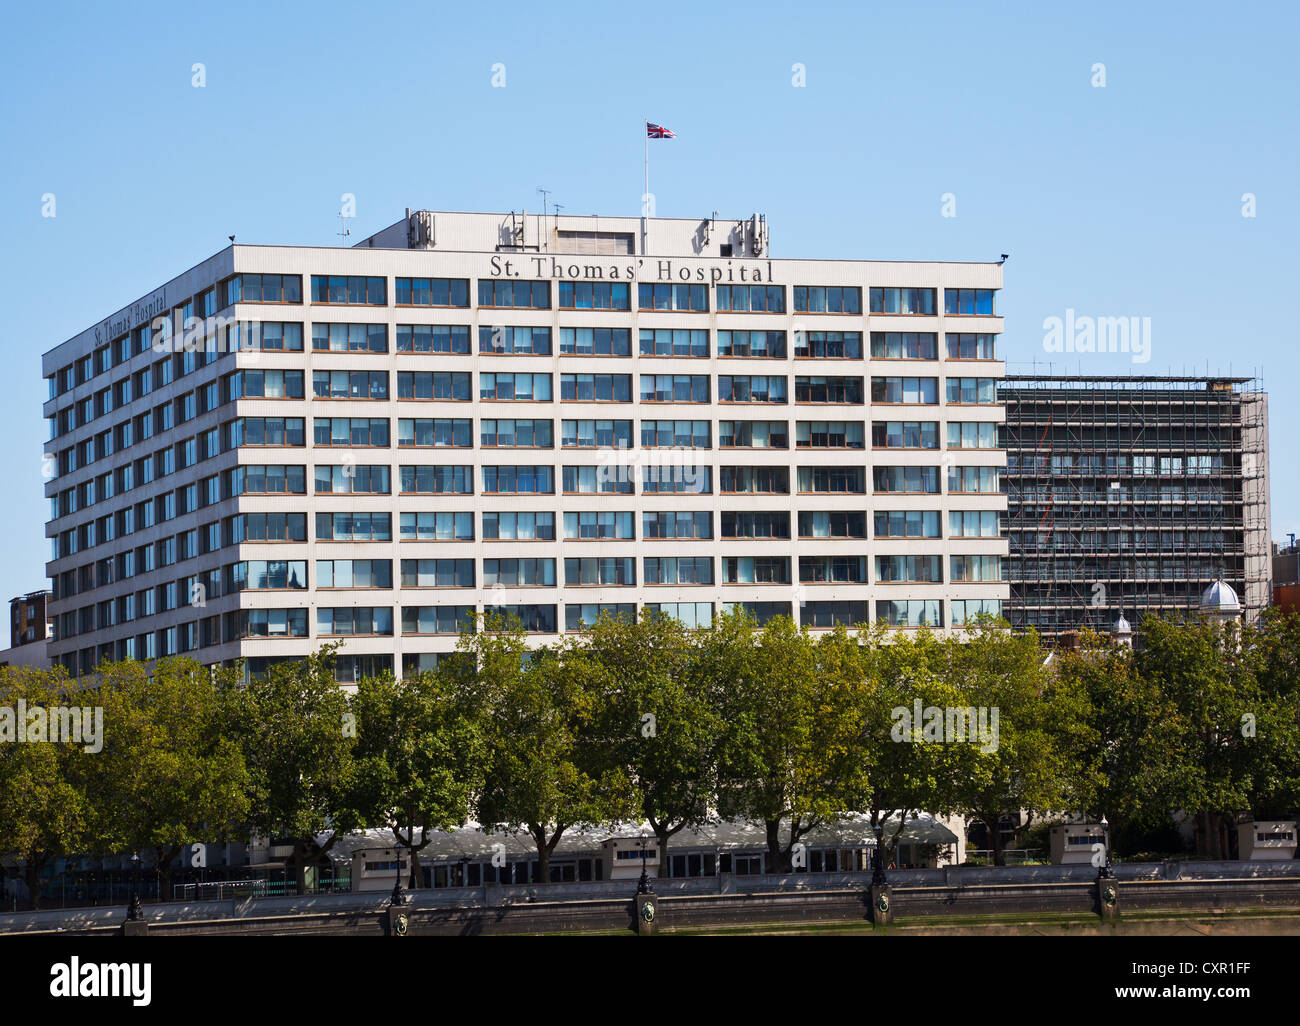 St. Thomas' Hospital - Stock Image